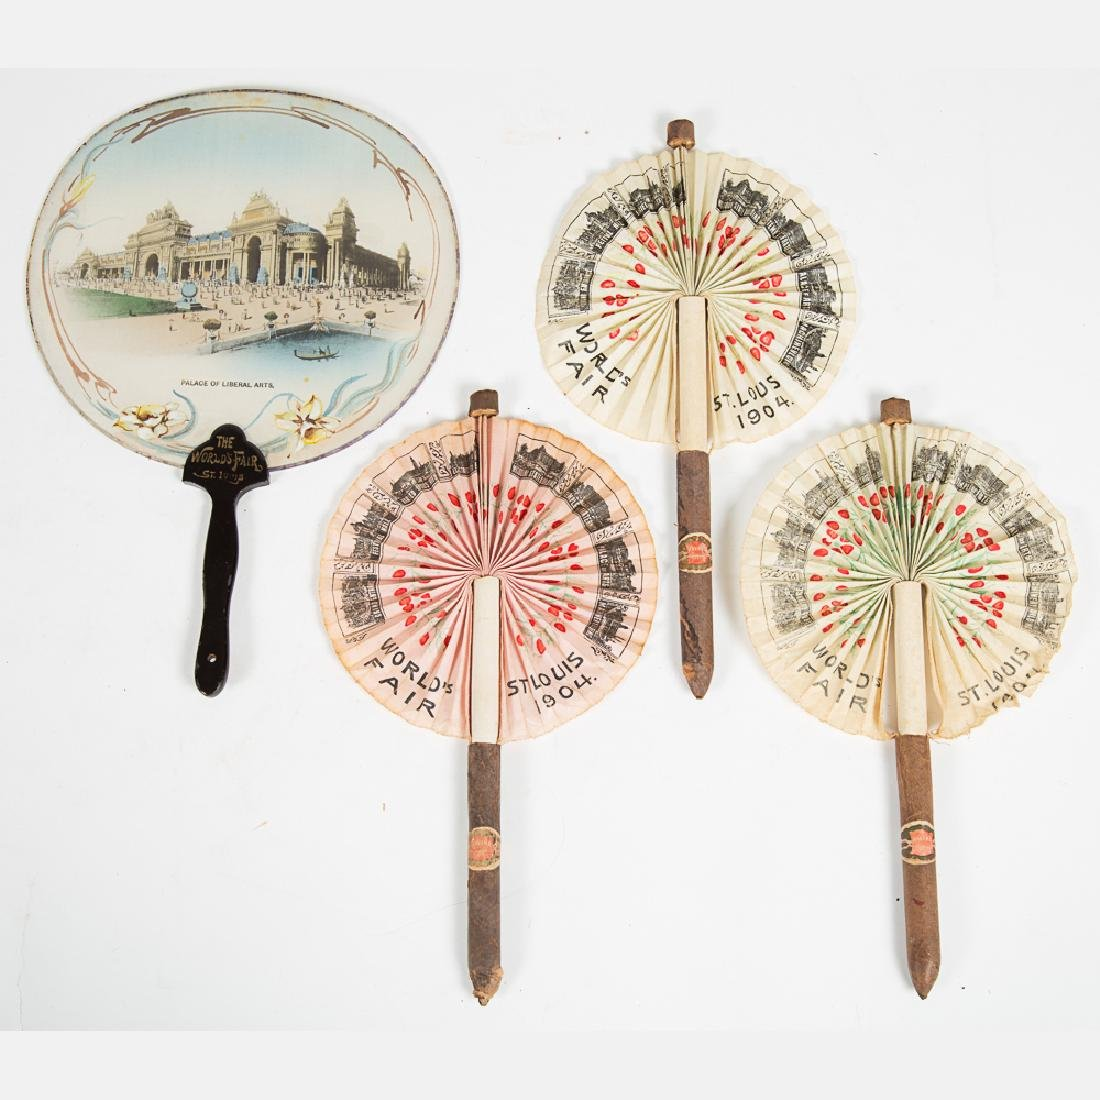 A Group of Three Fabric Fans from the Louisiana